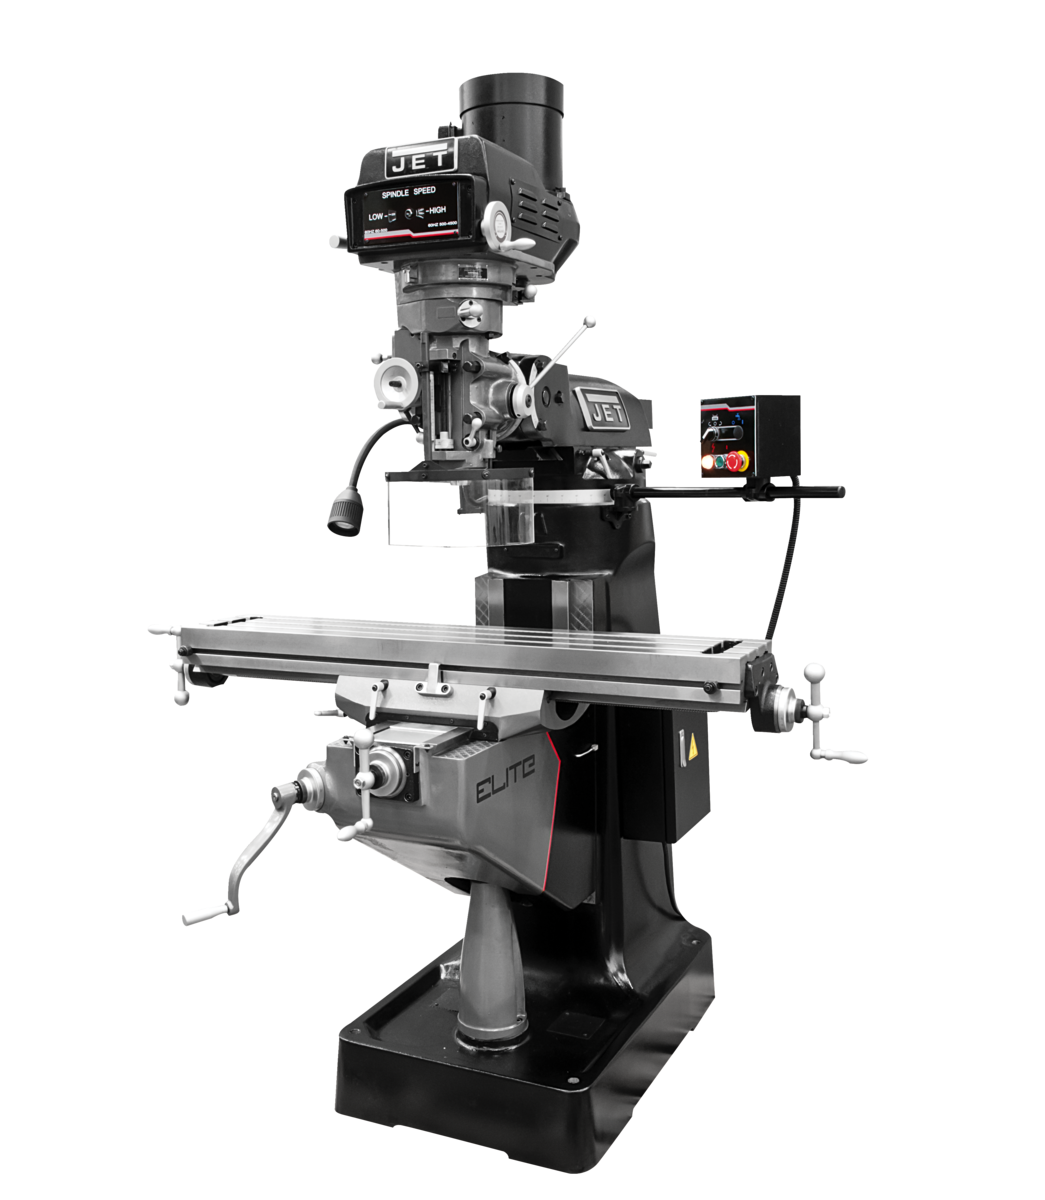 ETM-949 Mill with 2-Axis ACU-RITE 203 DRO and X-Axis JET Powerfeed and USA Made Air Draw Bar